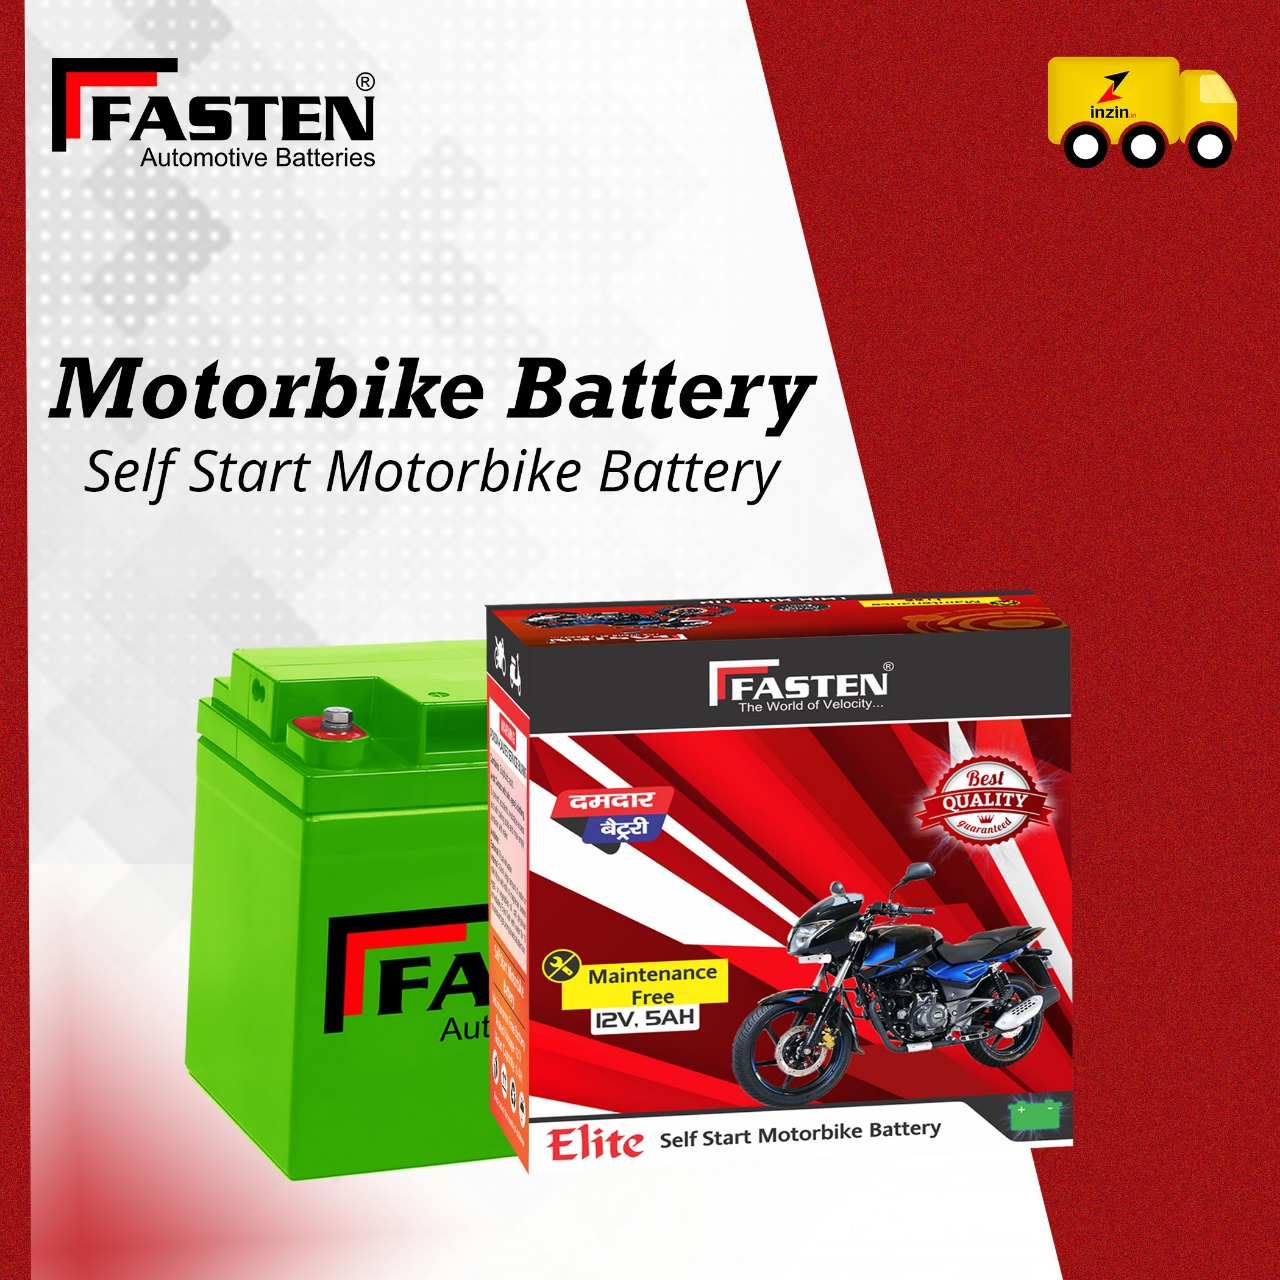 Automotive Battery Brands in India